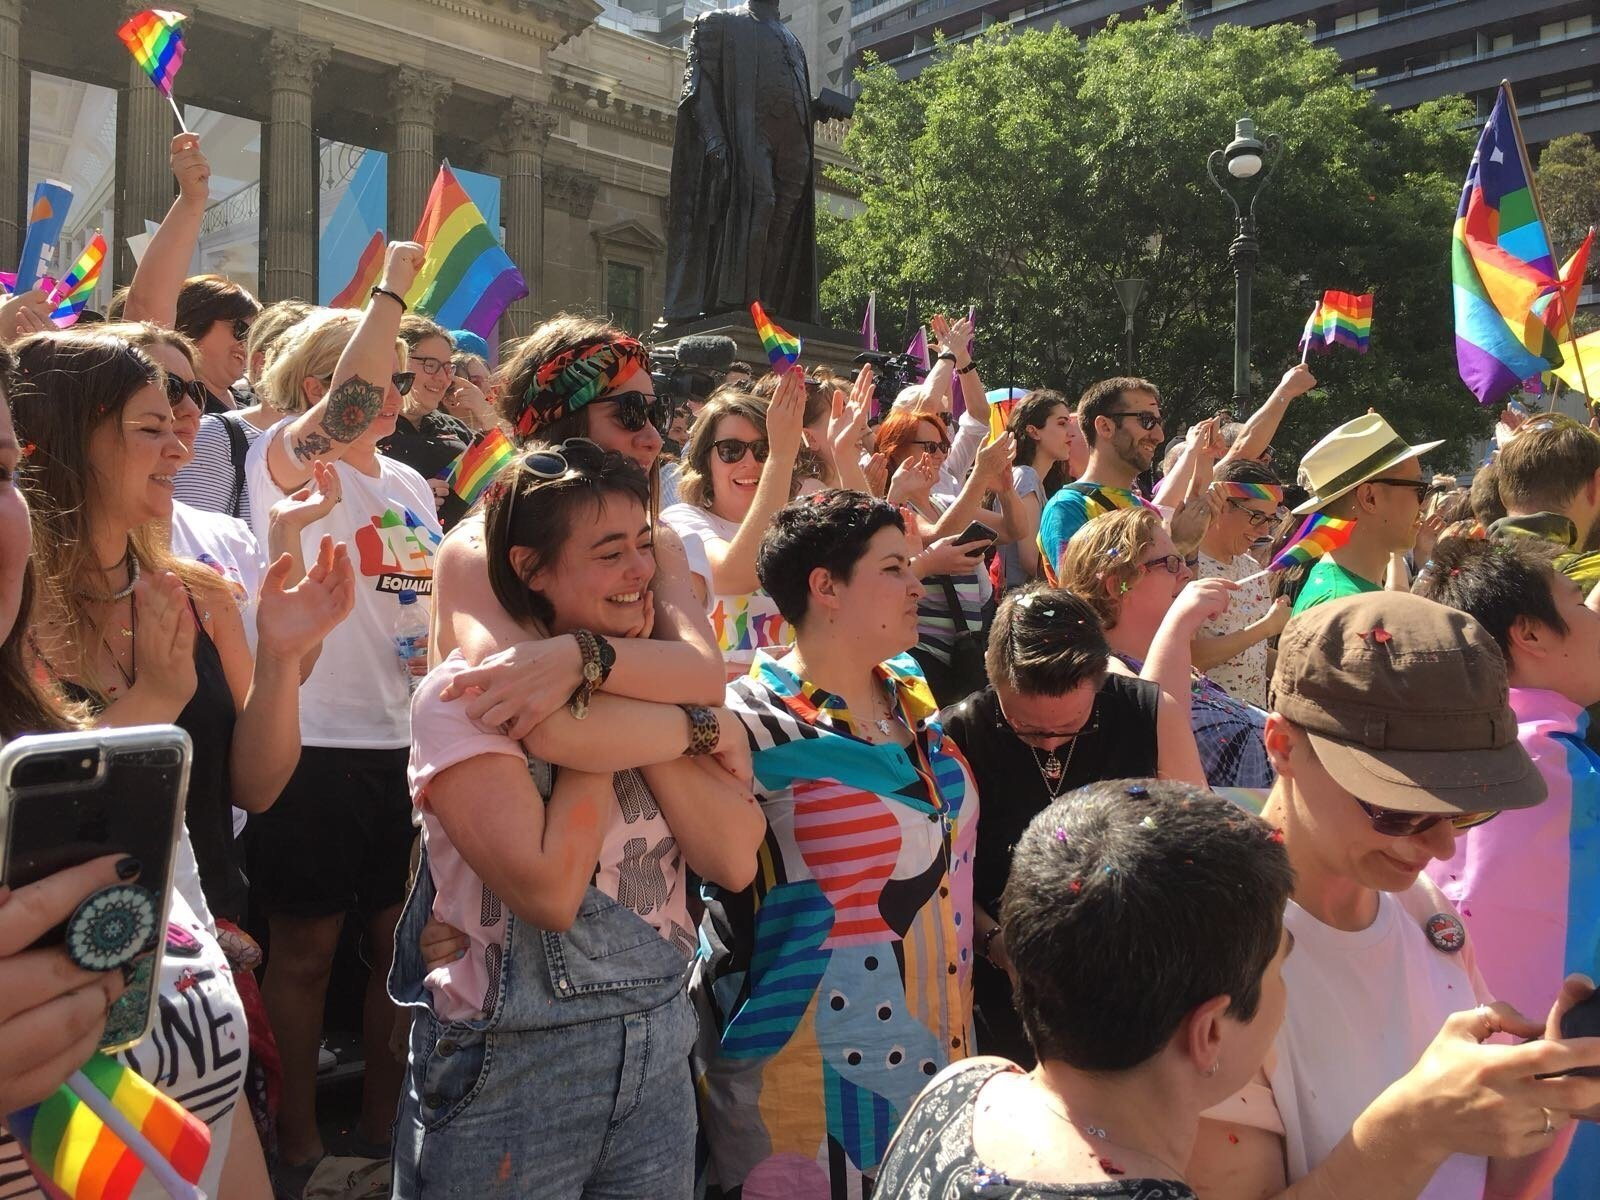 Crowds in Melbourne erupted in cheers after the result was announced.